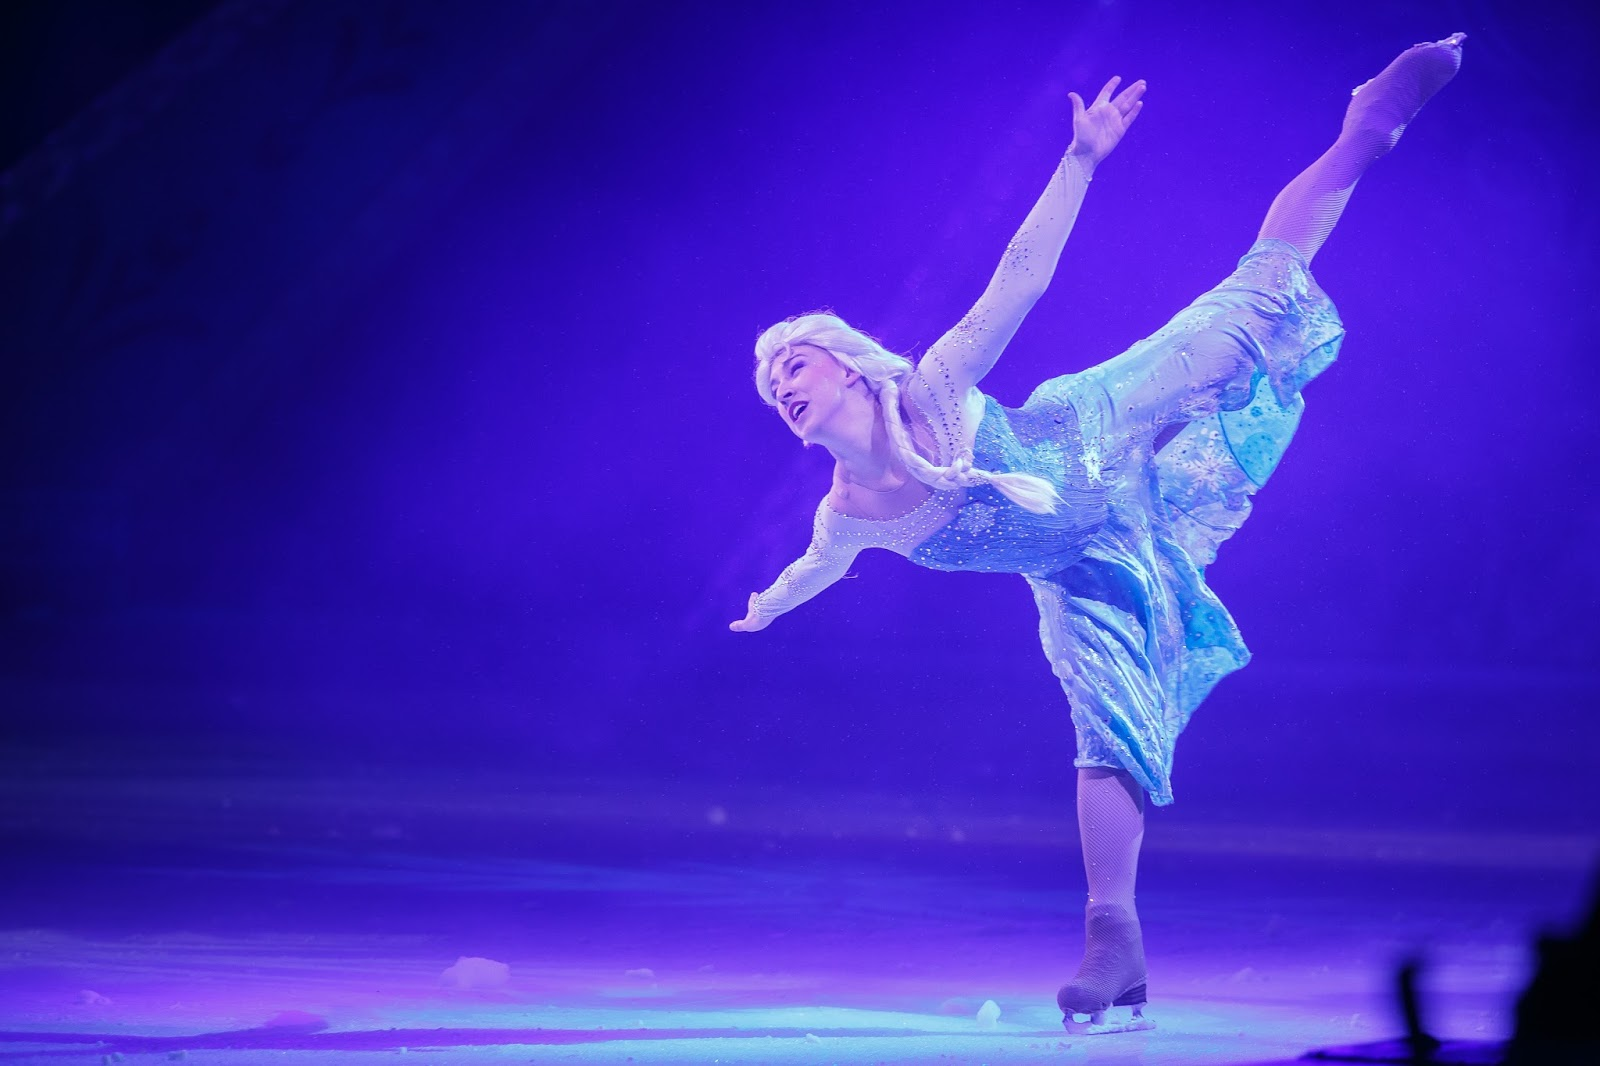 Disney On Ice presents Frozen - A spoiler free review from opening night at Newcastle's Metro Radio Arena